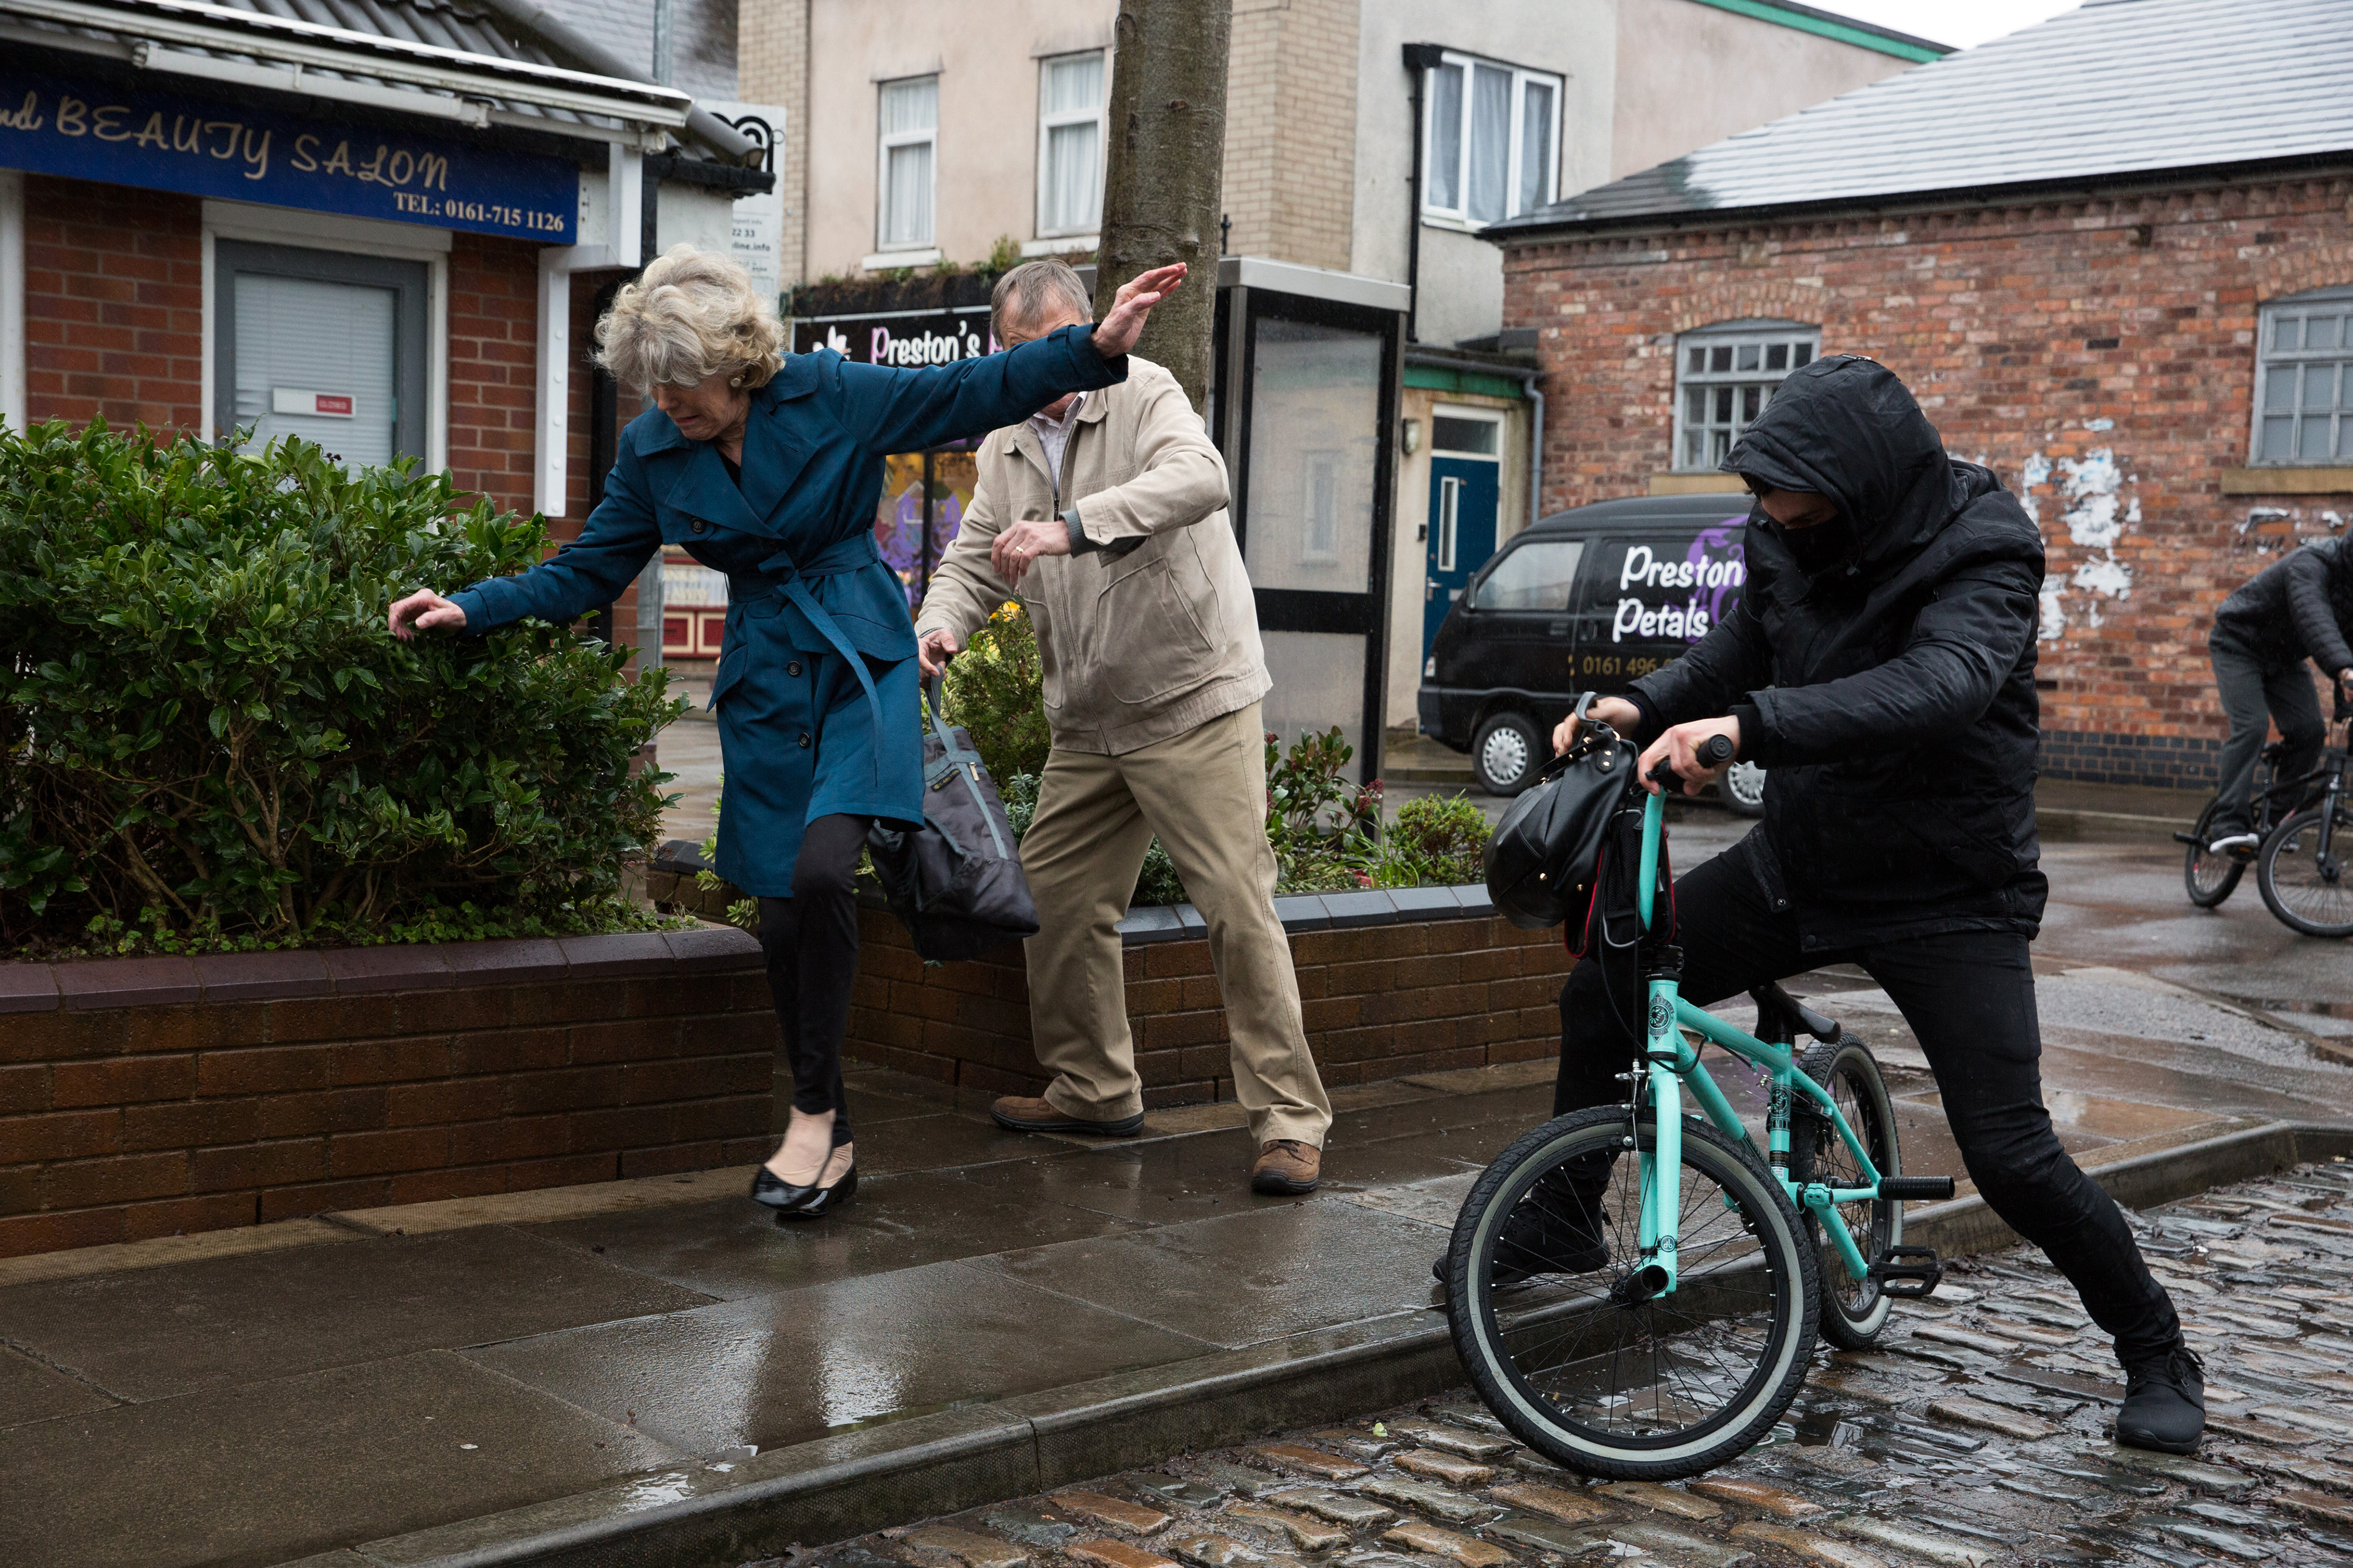 Audrey falls over in Coronation Street